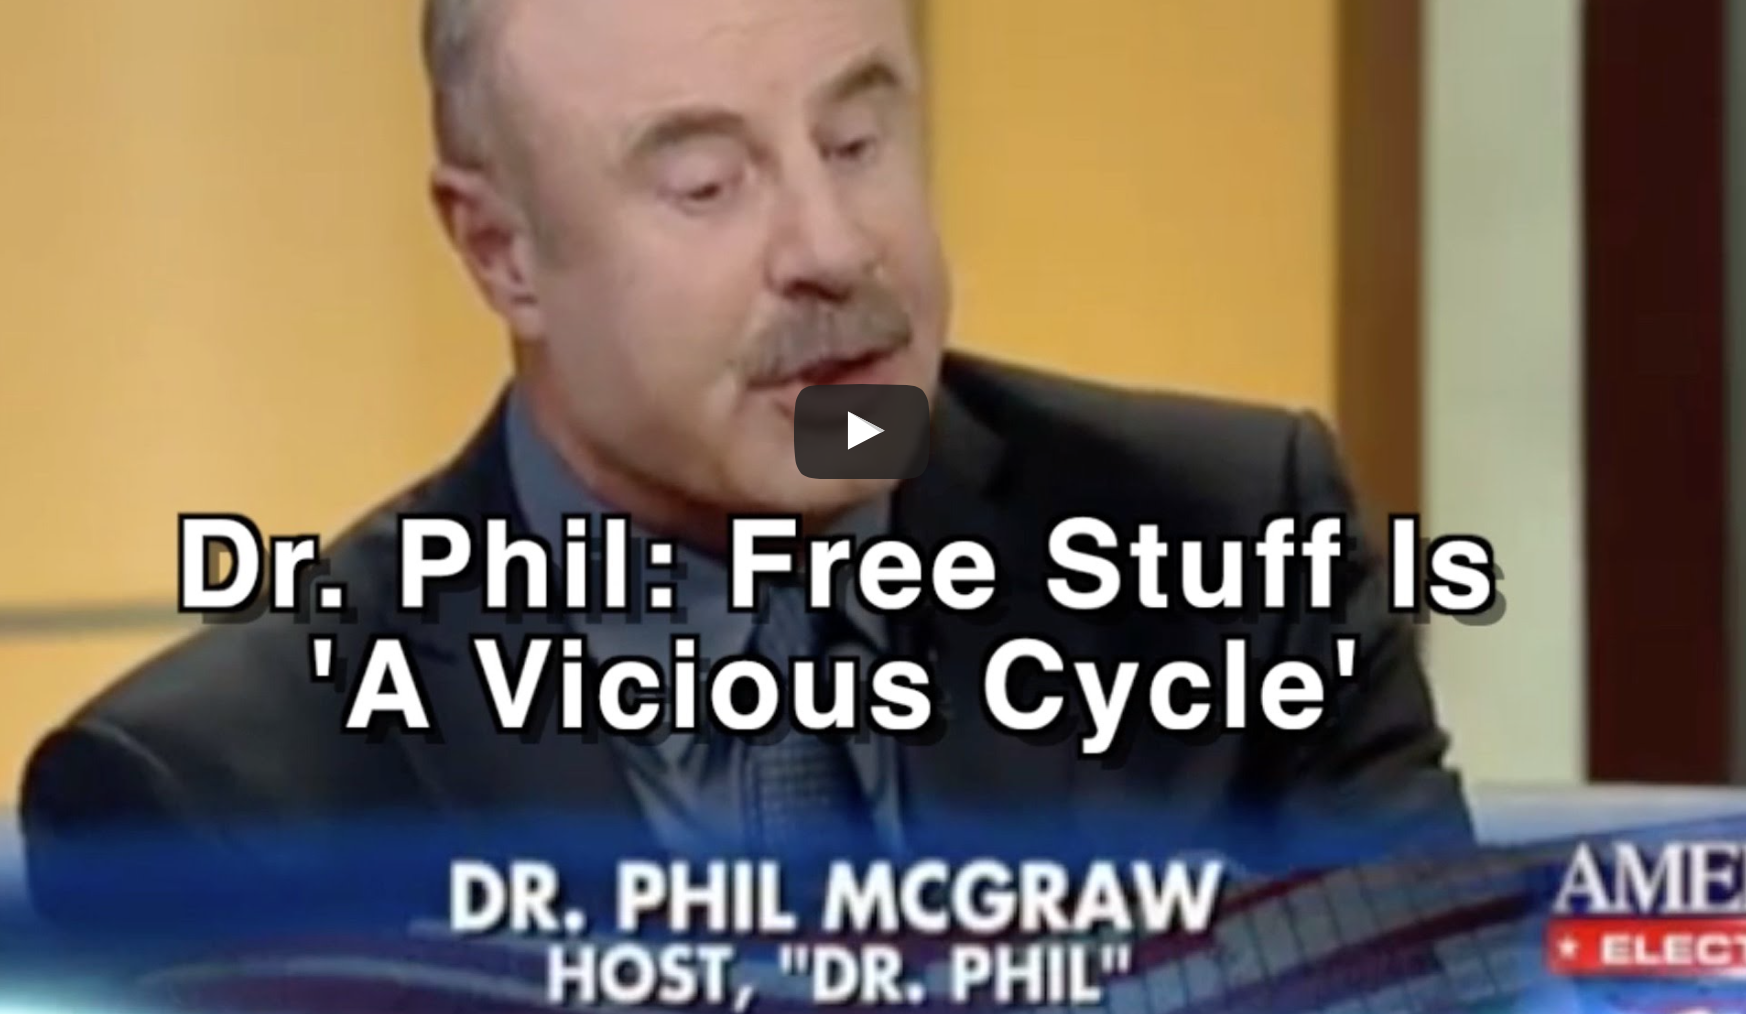 [VIDEO] The Psychology Of Free Stuff: Dr Phill Unloads On Sanders And Socialism